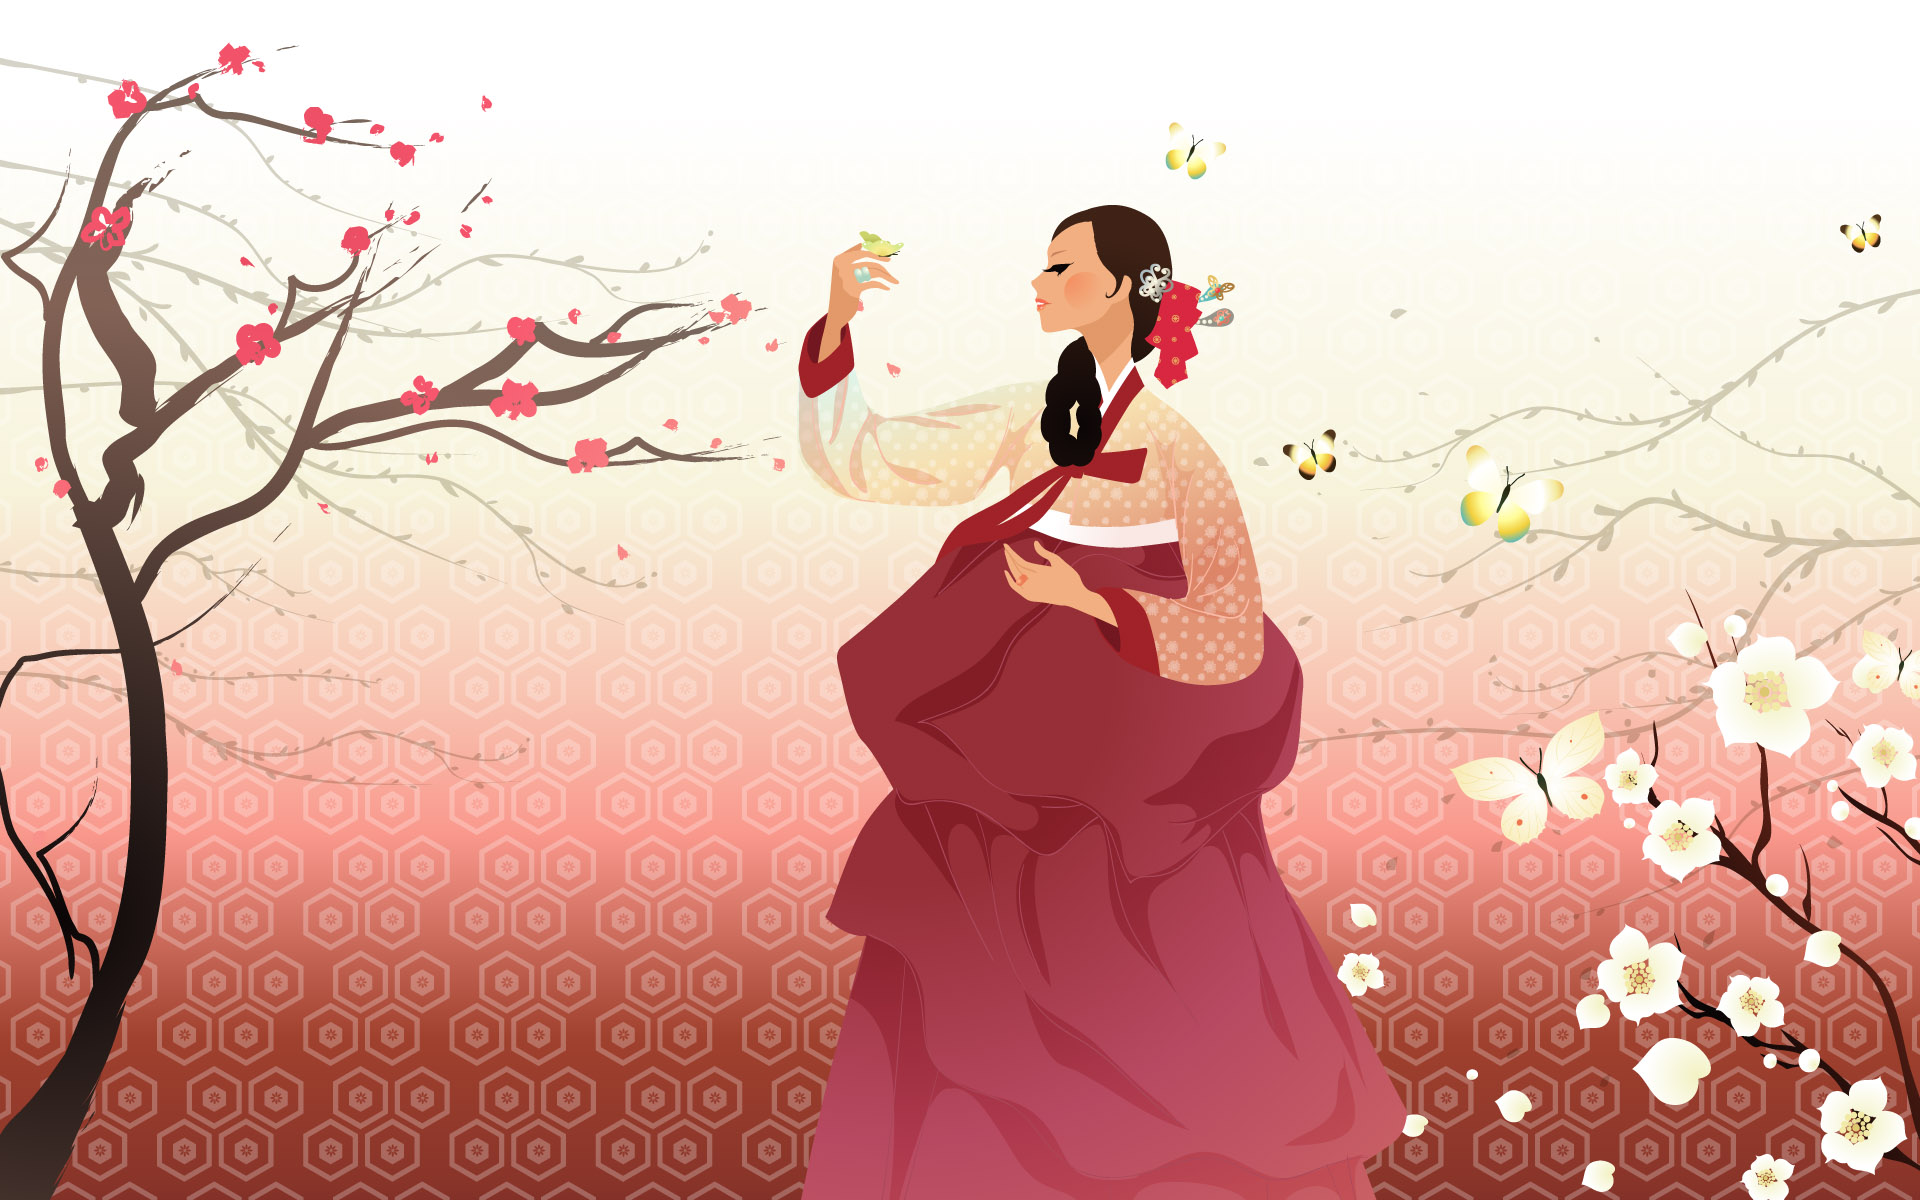 Korean women Wallpapers 8954